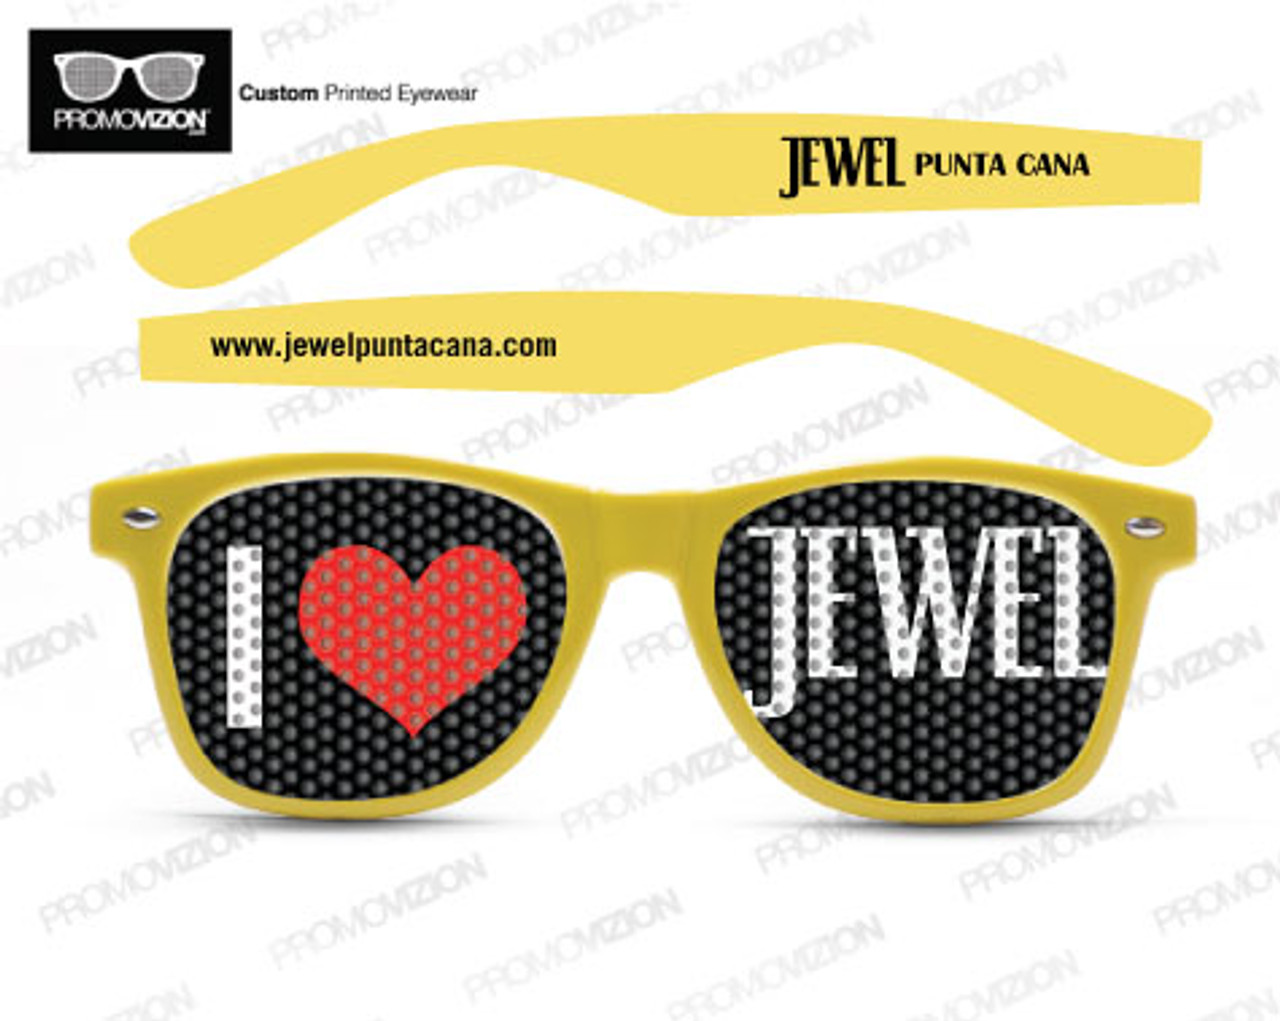 leg printing,bar,festival,vendors,Night,Night Club,NightClub,Shop,wedding,special event,DJ,VJ,Promote,customized,PromoVizion, Customizable, Personalized, Sunglasses, Lenses , Wayfare Lenses, Promo Lenses, Logo Lenses, Custom Lenses, Promo Glasses, Promo Vizion, Logolenses, Crystal Customs, iGlazzis, Personalized Glasses, Logo, Your text, 20 Pack, Bulk, DJALEX PROMO CODE, Nightclub Glasses, Glow in the dark, U.V. Reactive, GLOW